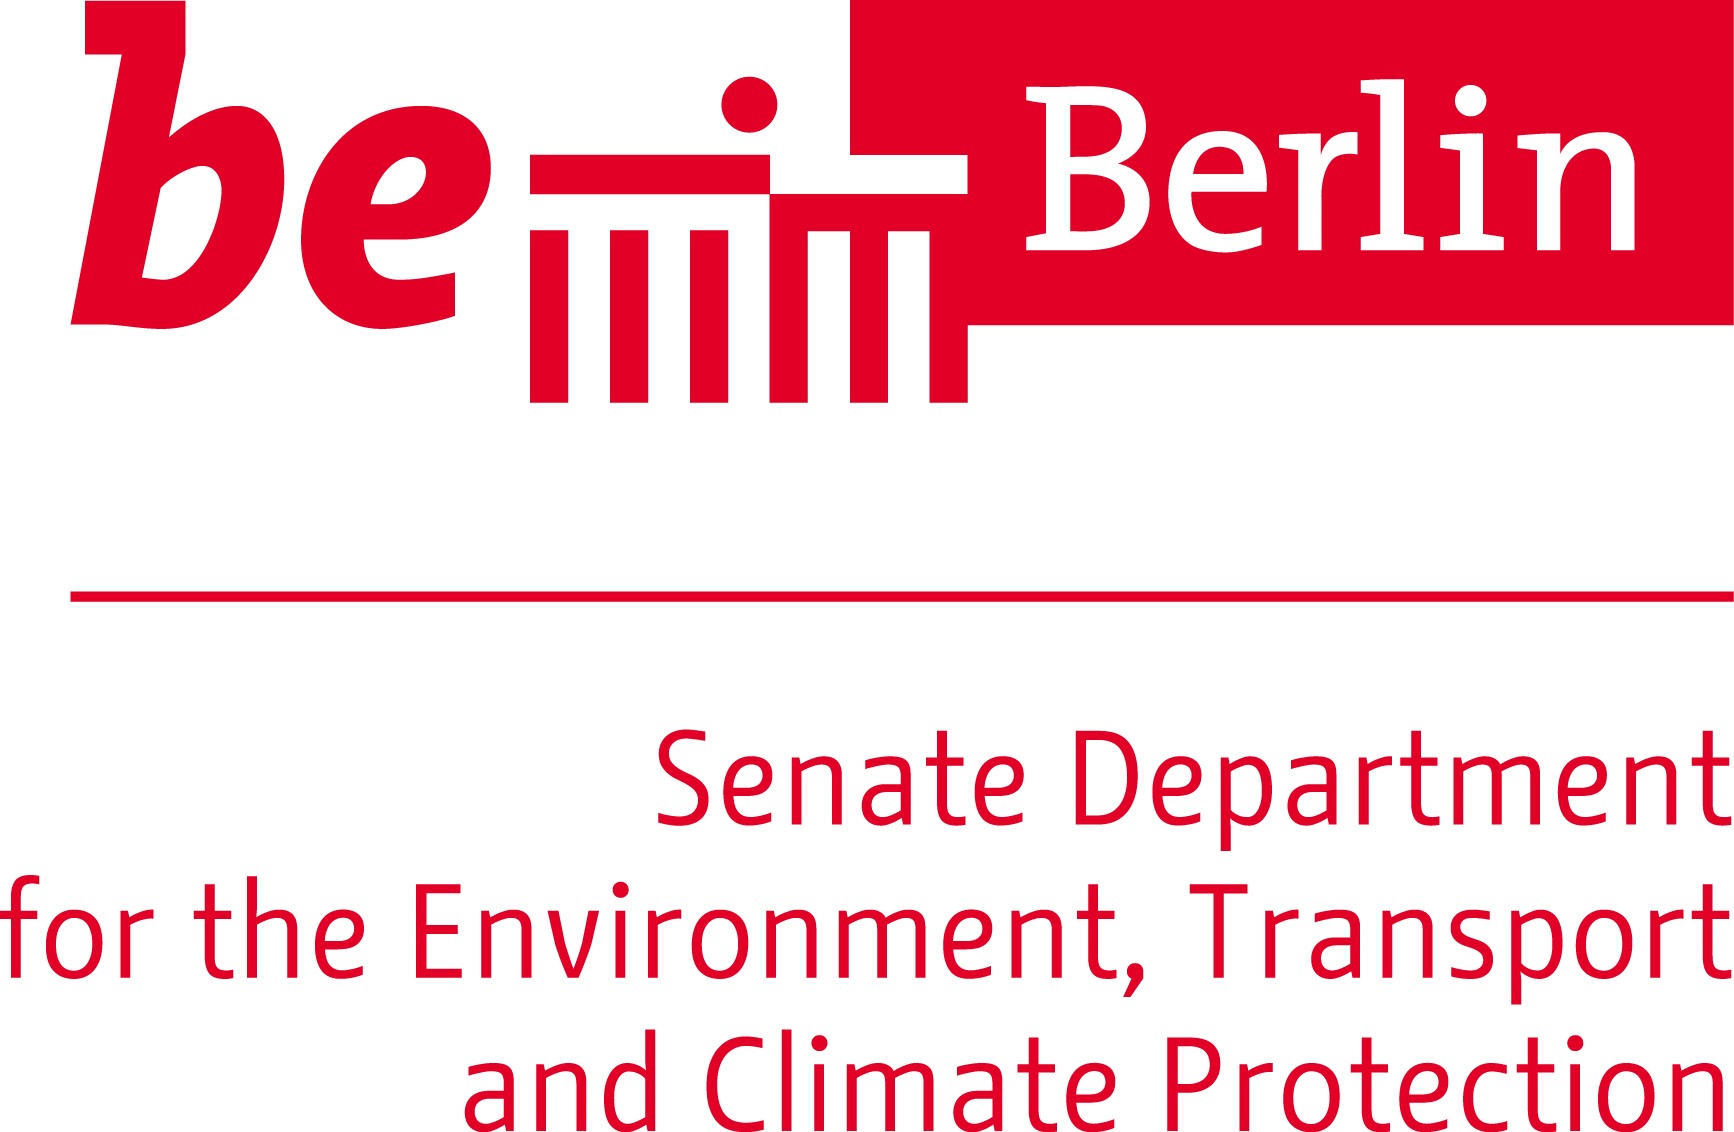 Senate Department for the Environment, Transport and Climate Protection